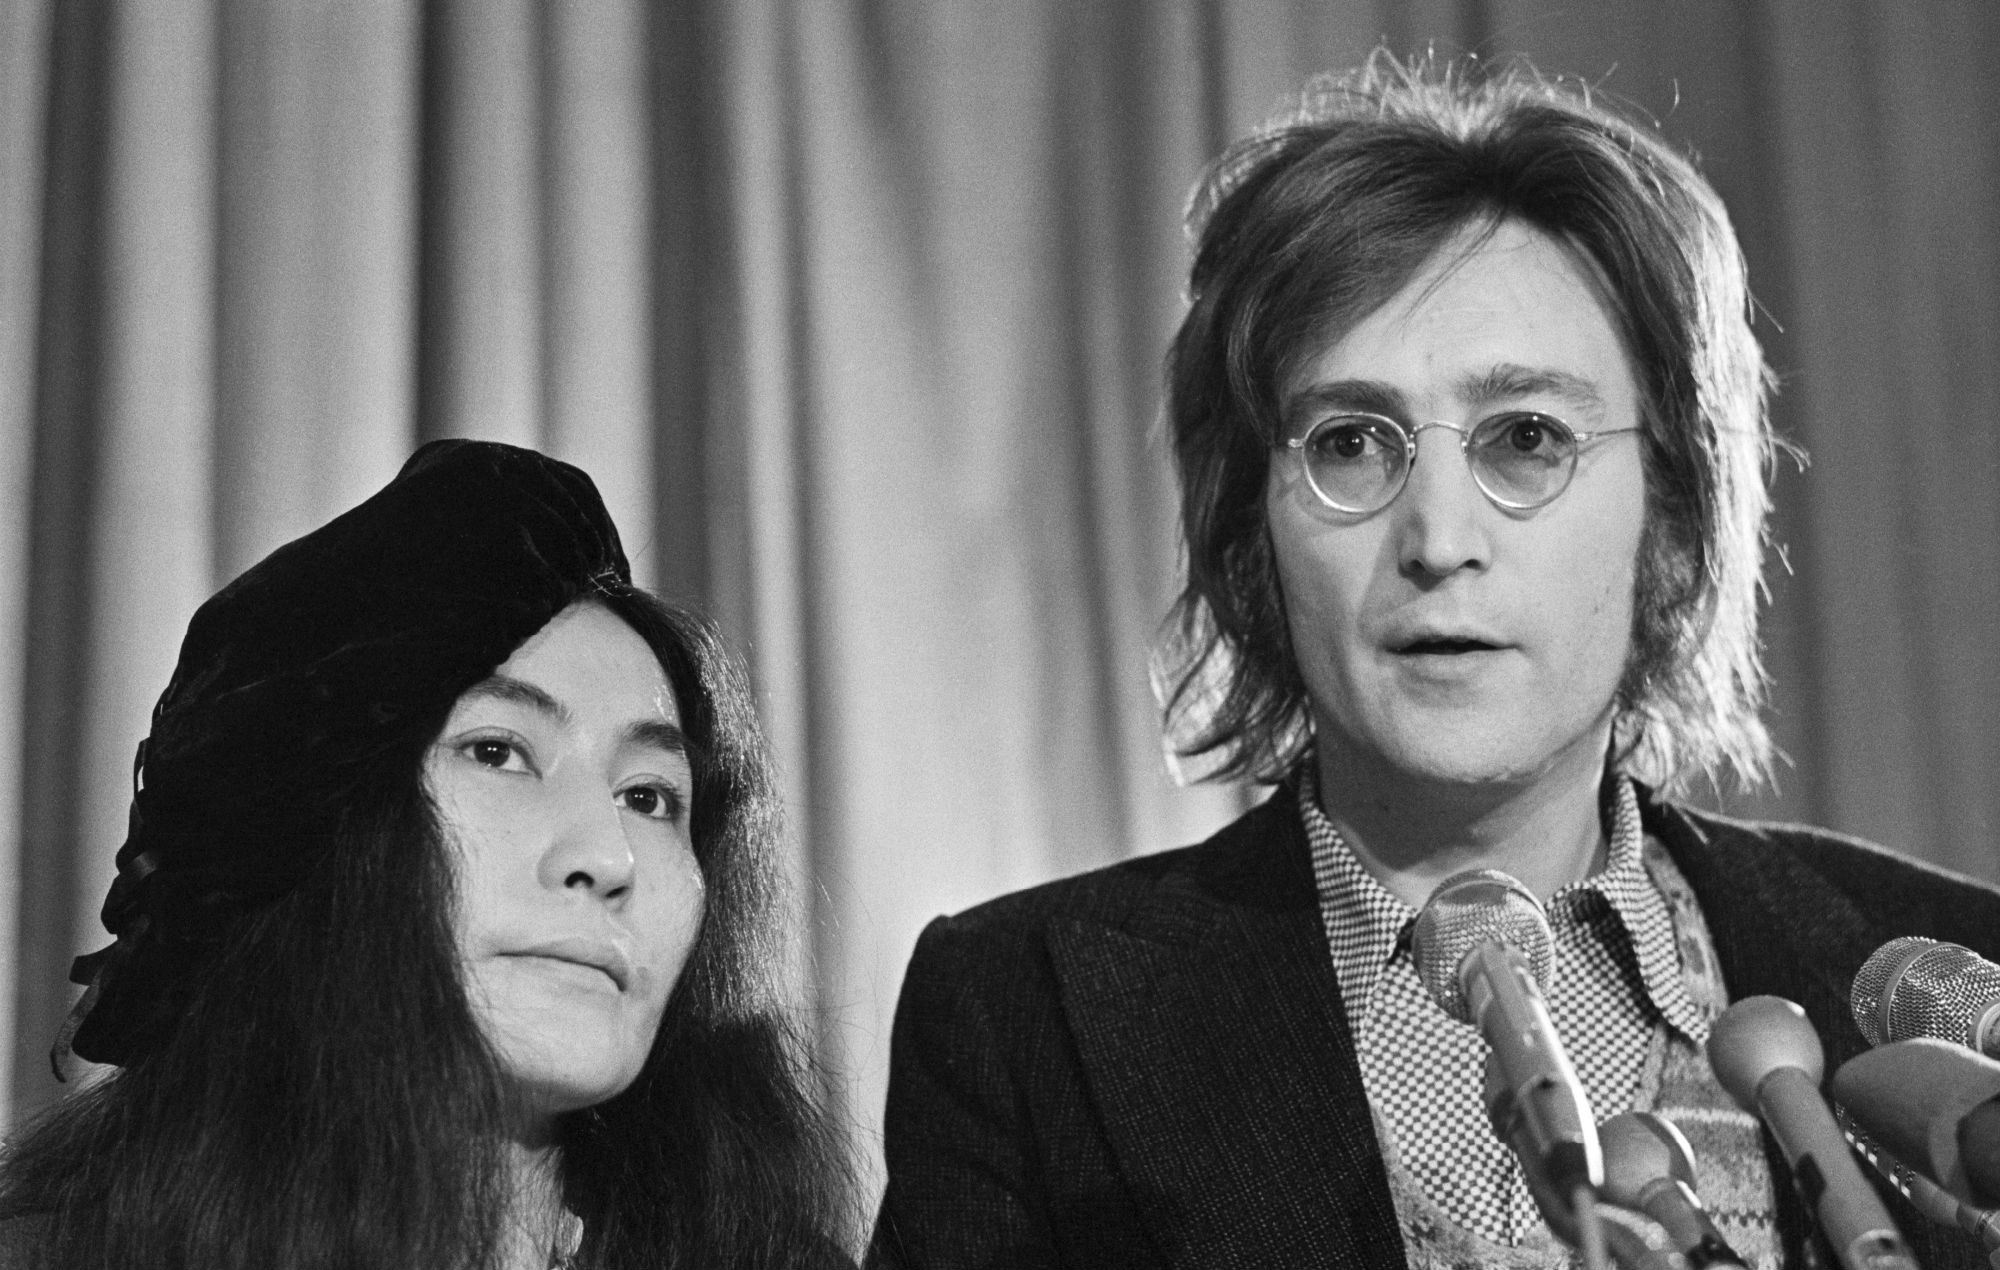 Yoko Ono Remembers John Lennon On The Anniversary Of His Death